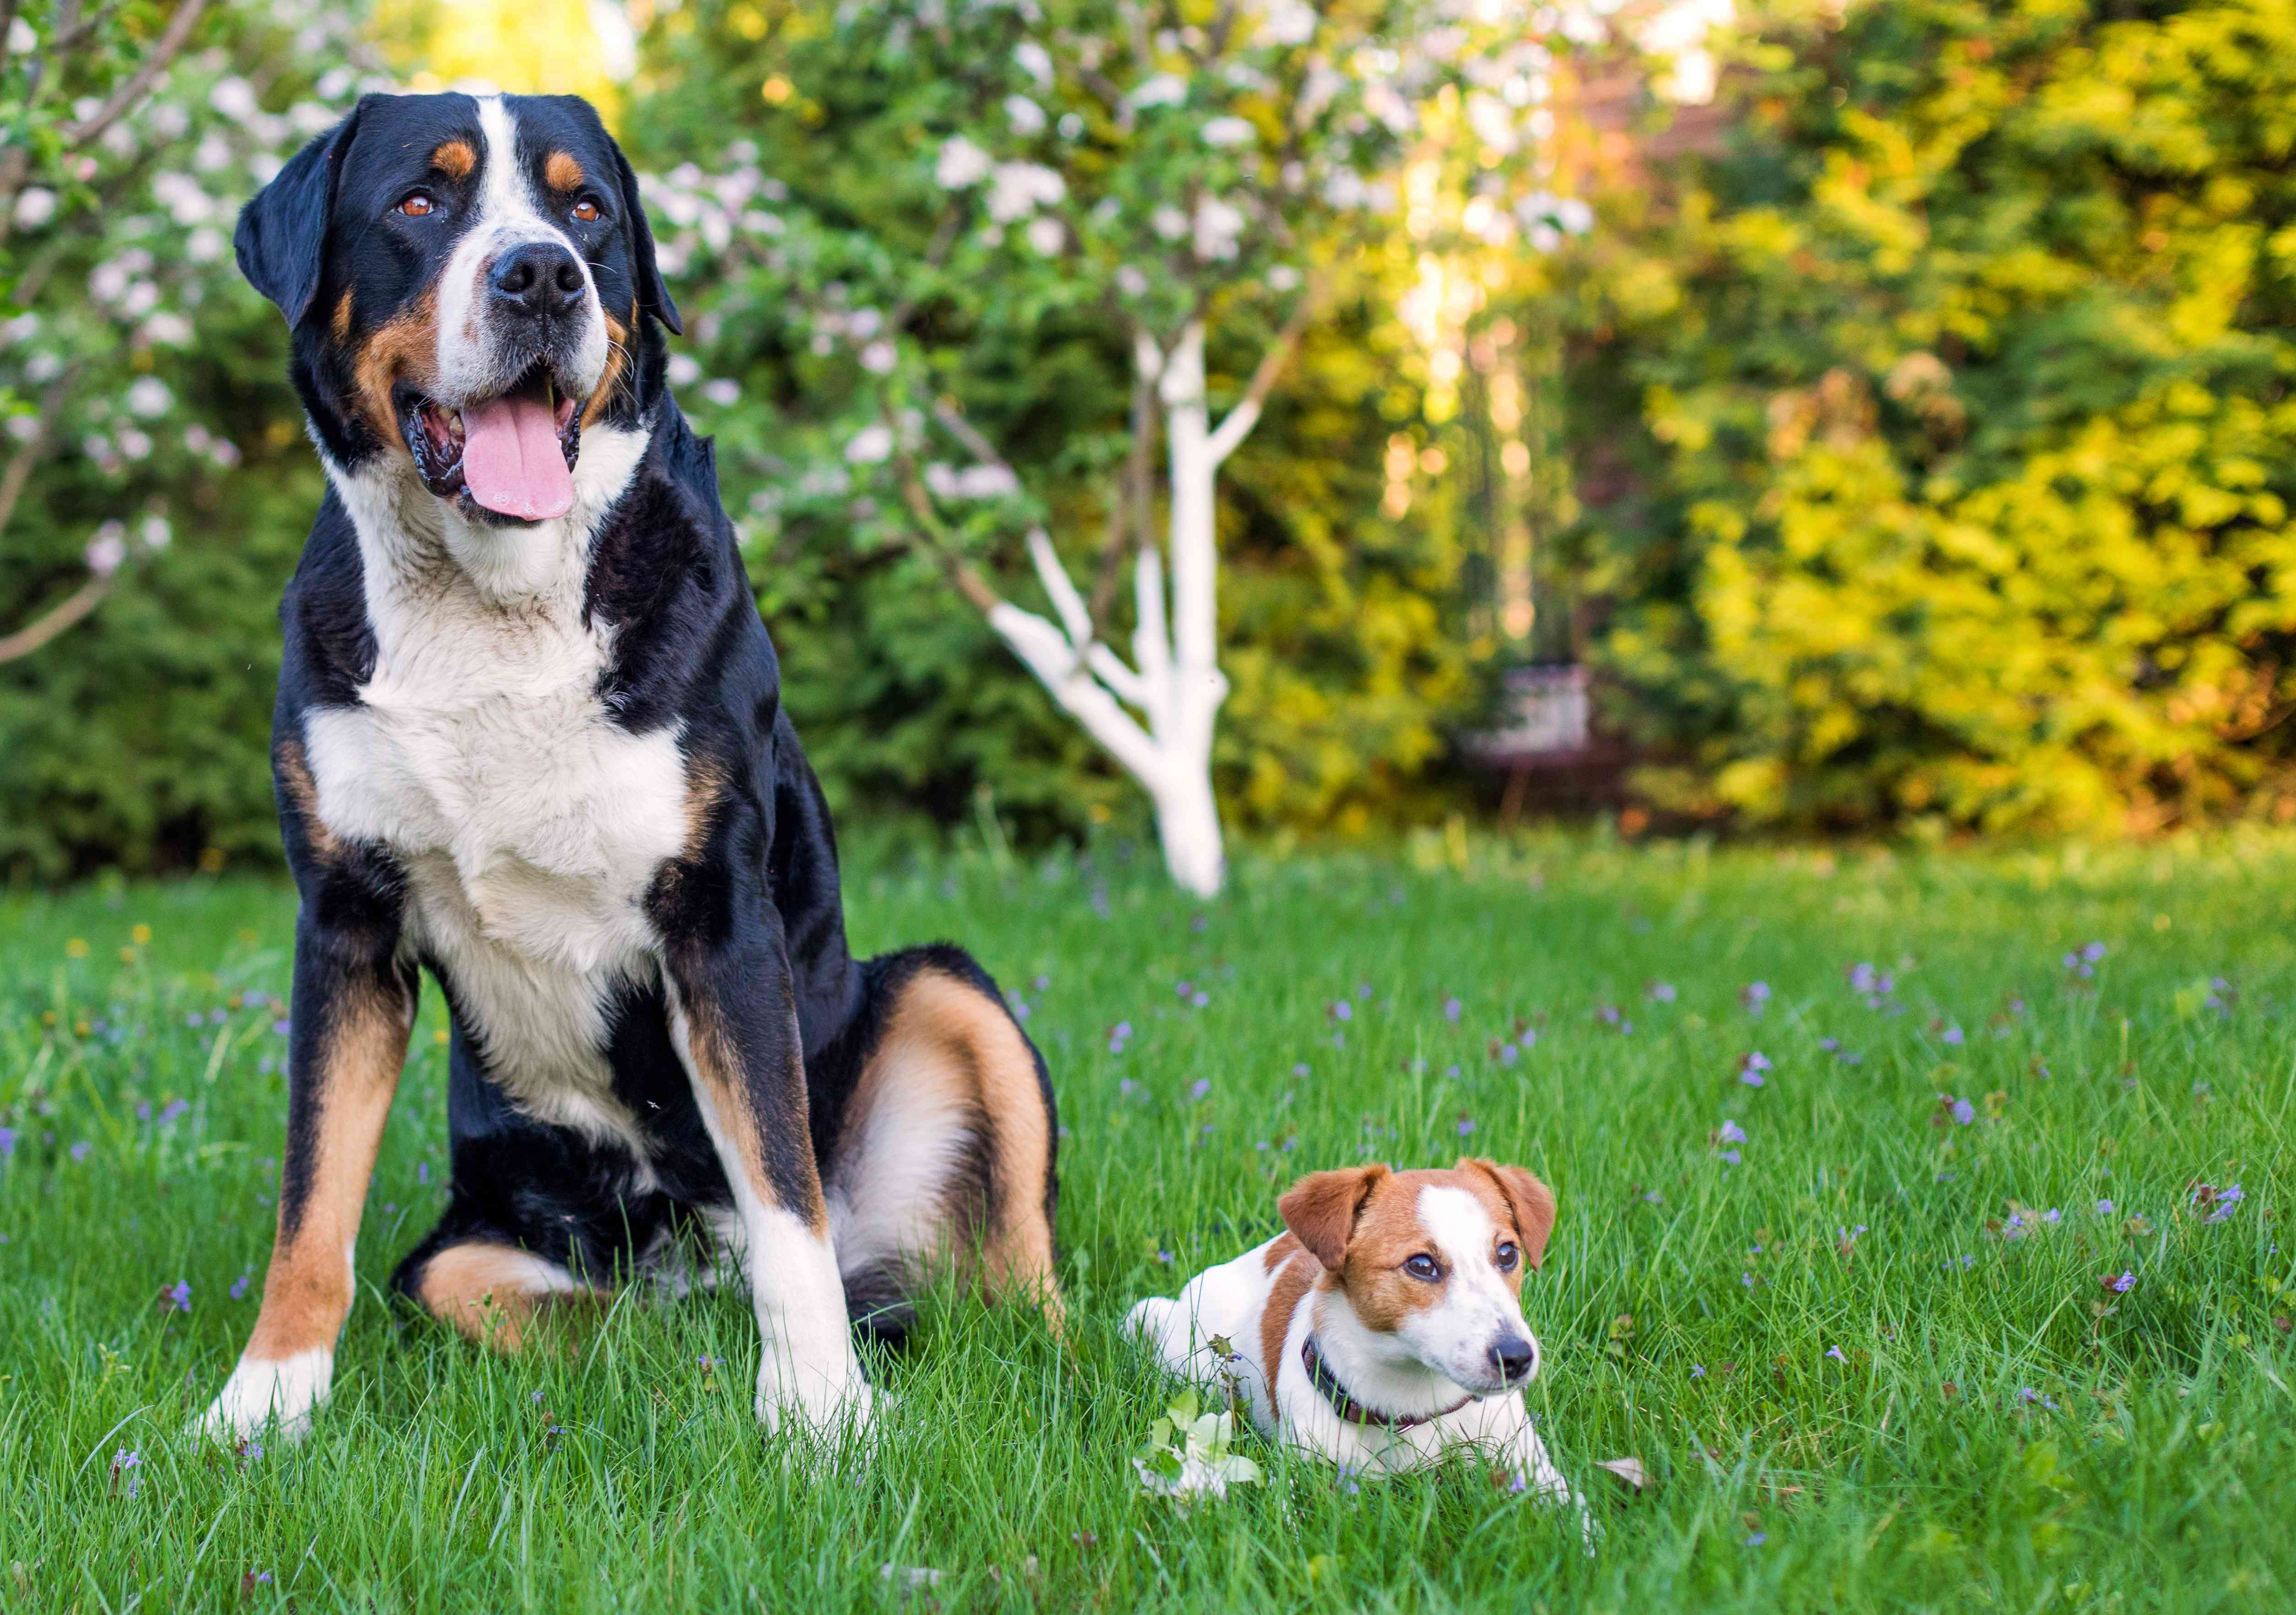 big dog and tiny dog sitting in the grass